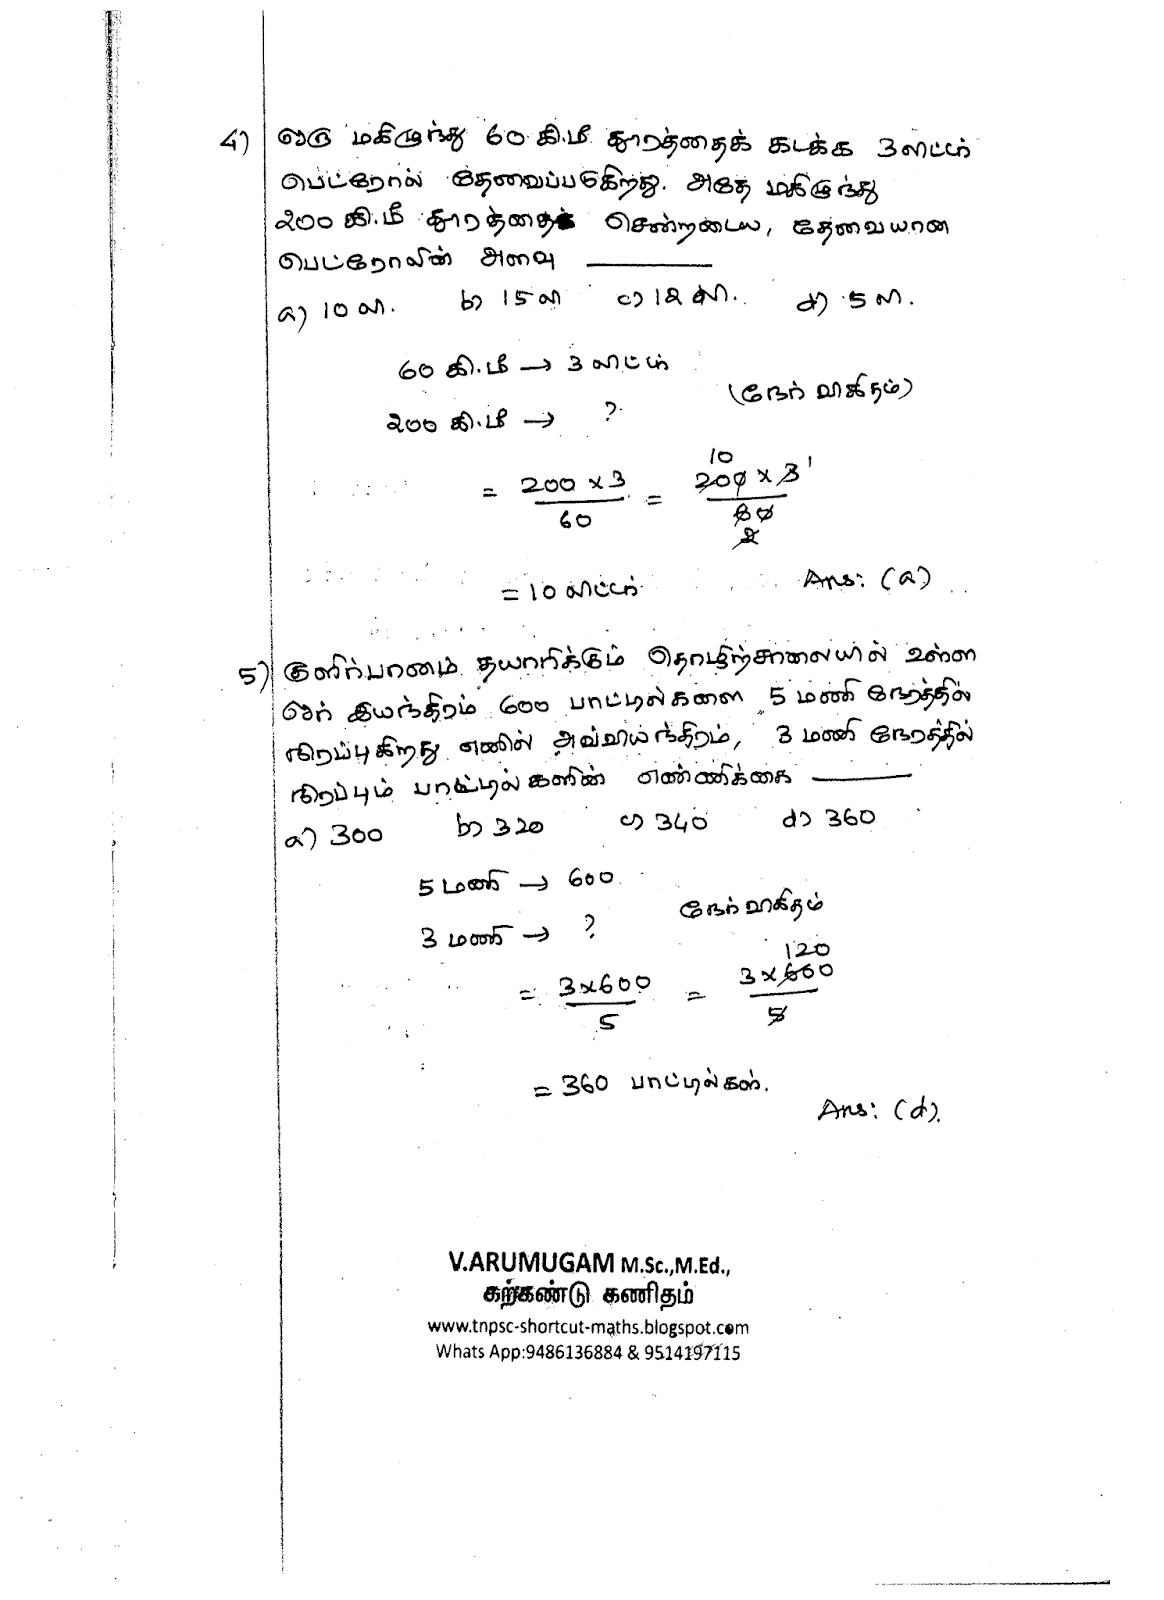 2019 - NEW SYLLABUS - VII STD - I TERM - UNIT-4: DIRECT & INVERSE PROPORTIONS - PAGE - 02/29